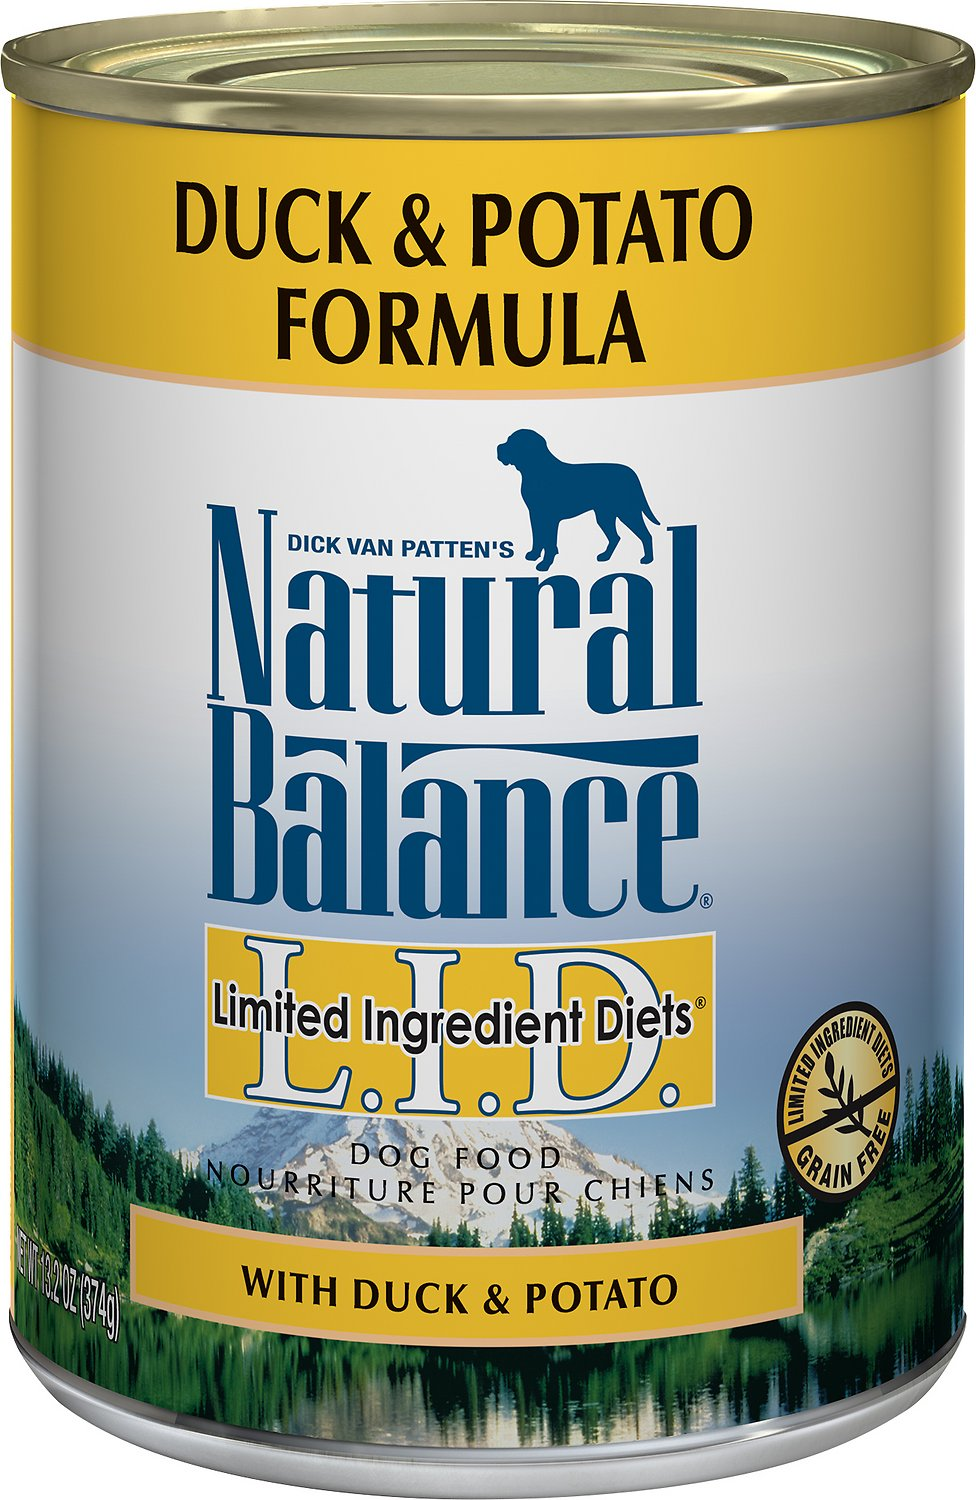 Natural Balance L.I.D. Limited Ingredient Diets Duck & Potato Formula Grain-Free Canned Dog Food, 13-oz